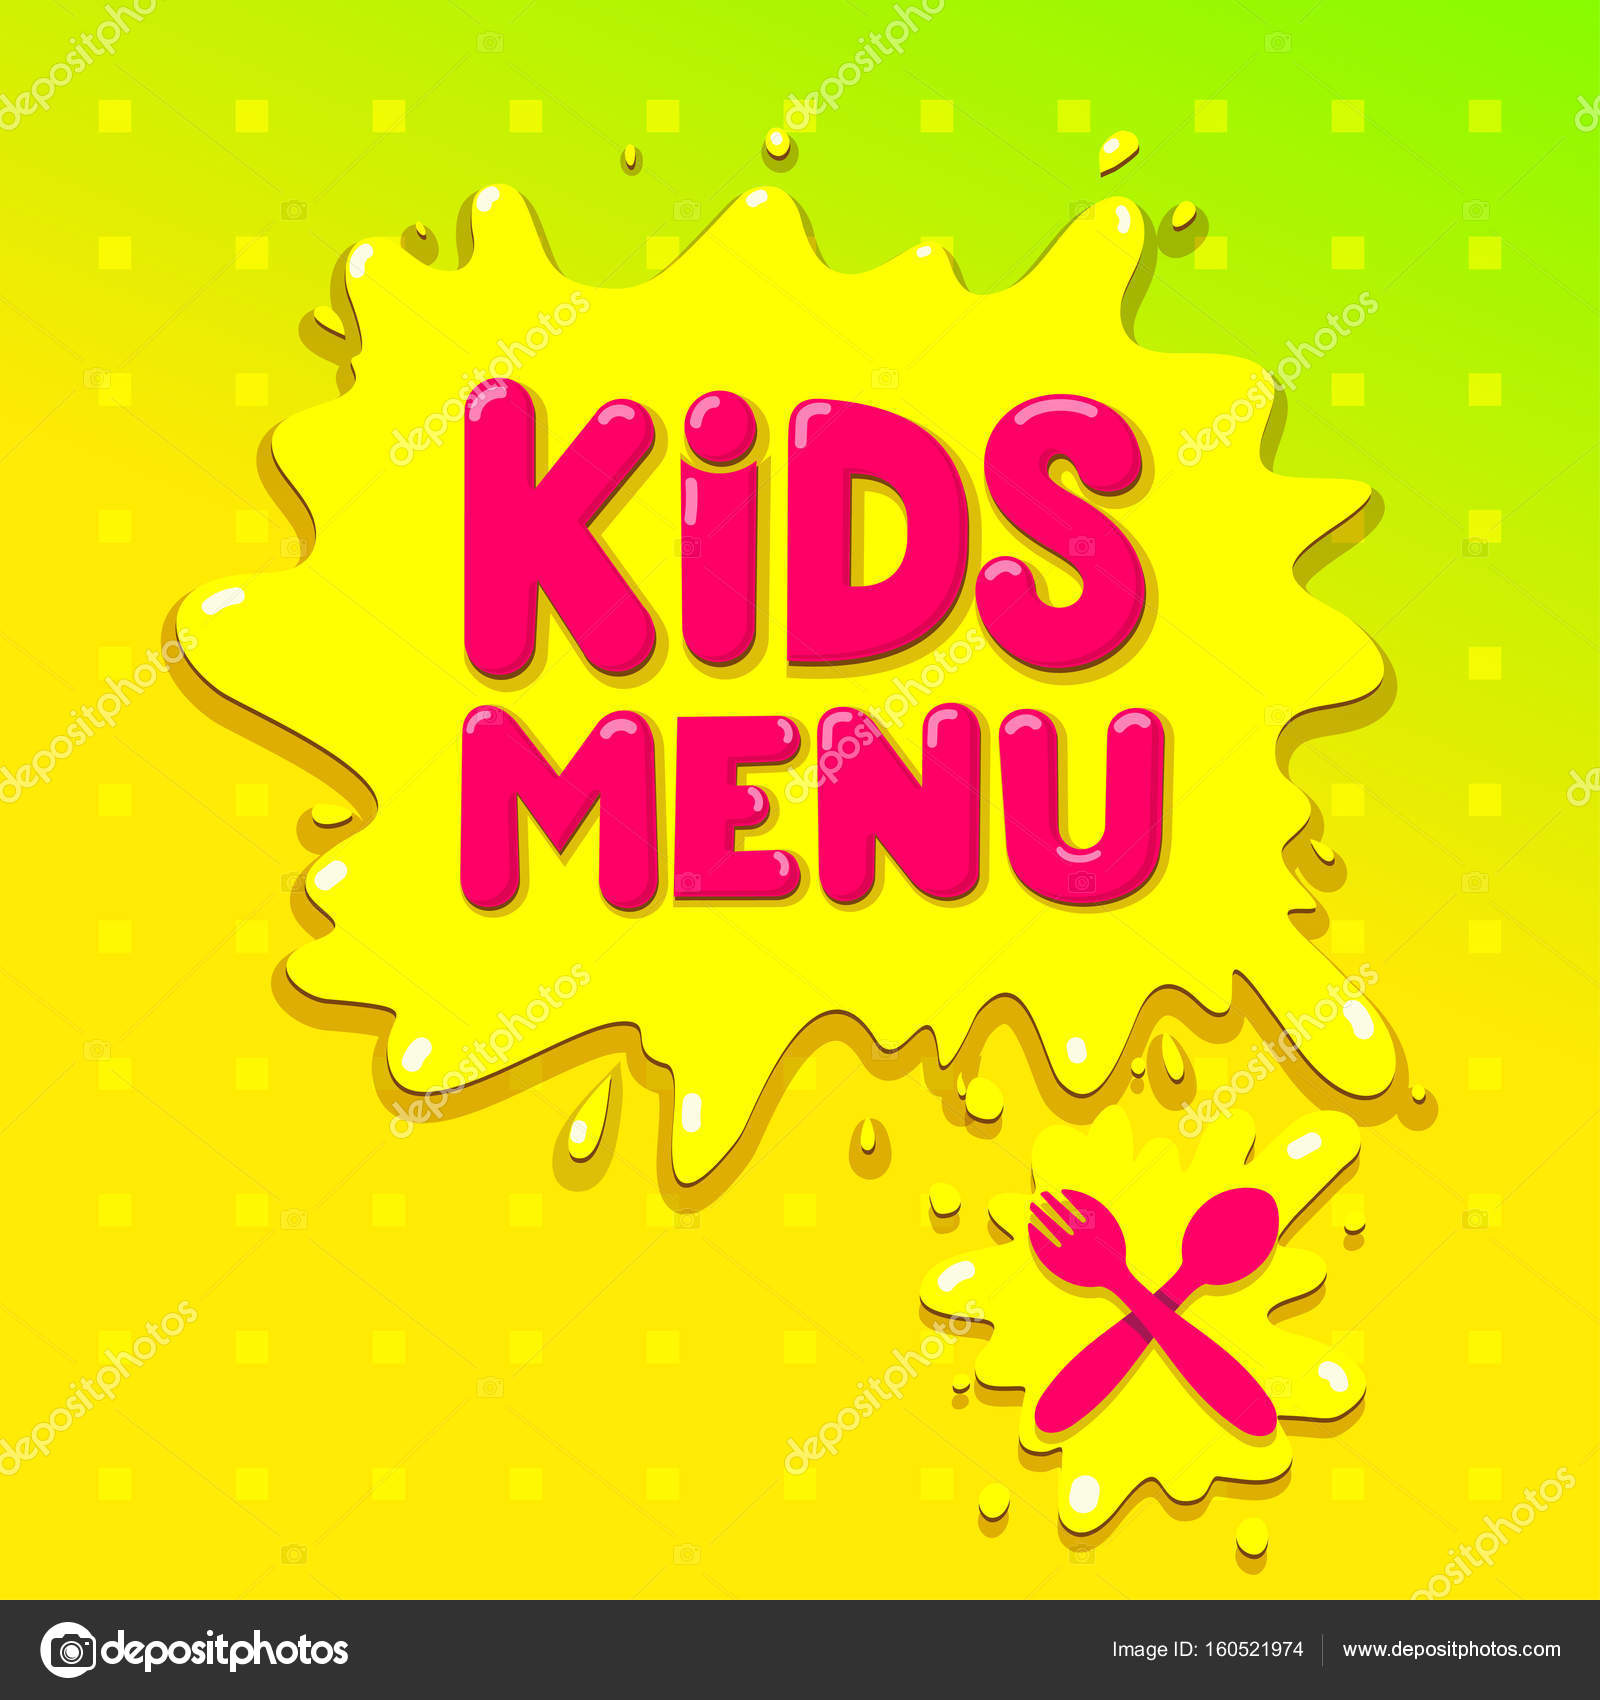 Kids Menu Banner Design Vector Illustration Isolated On Green Background For Your